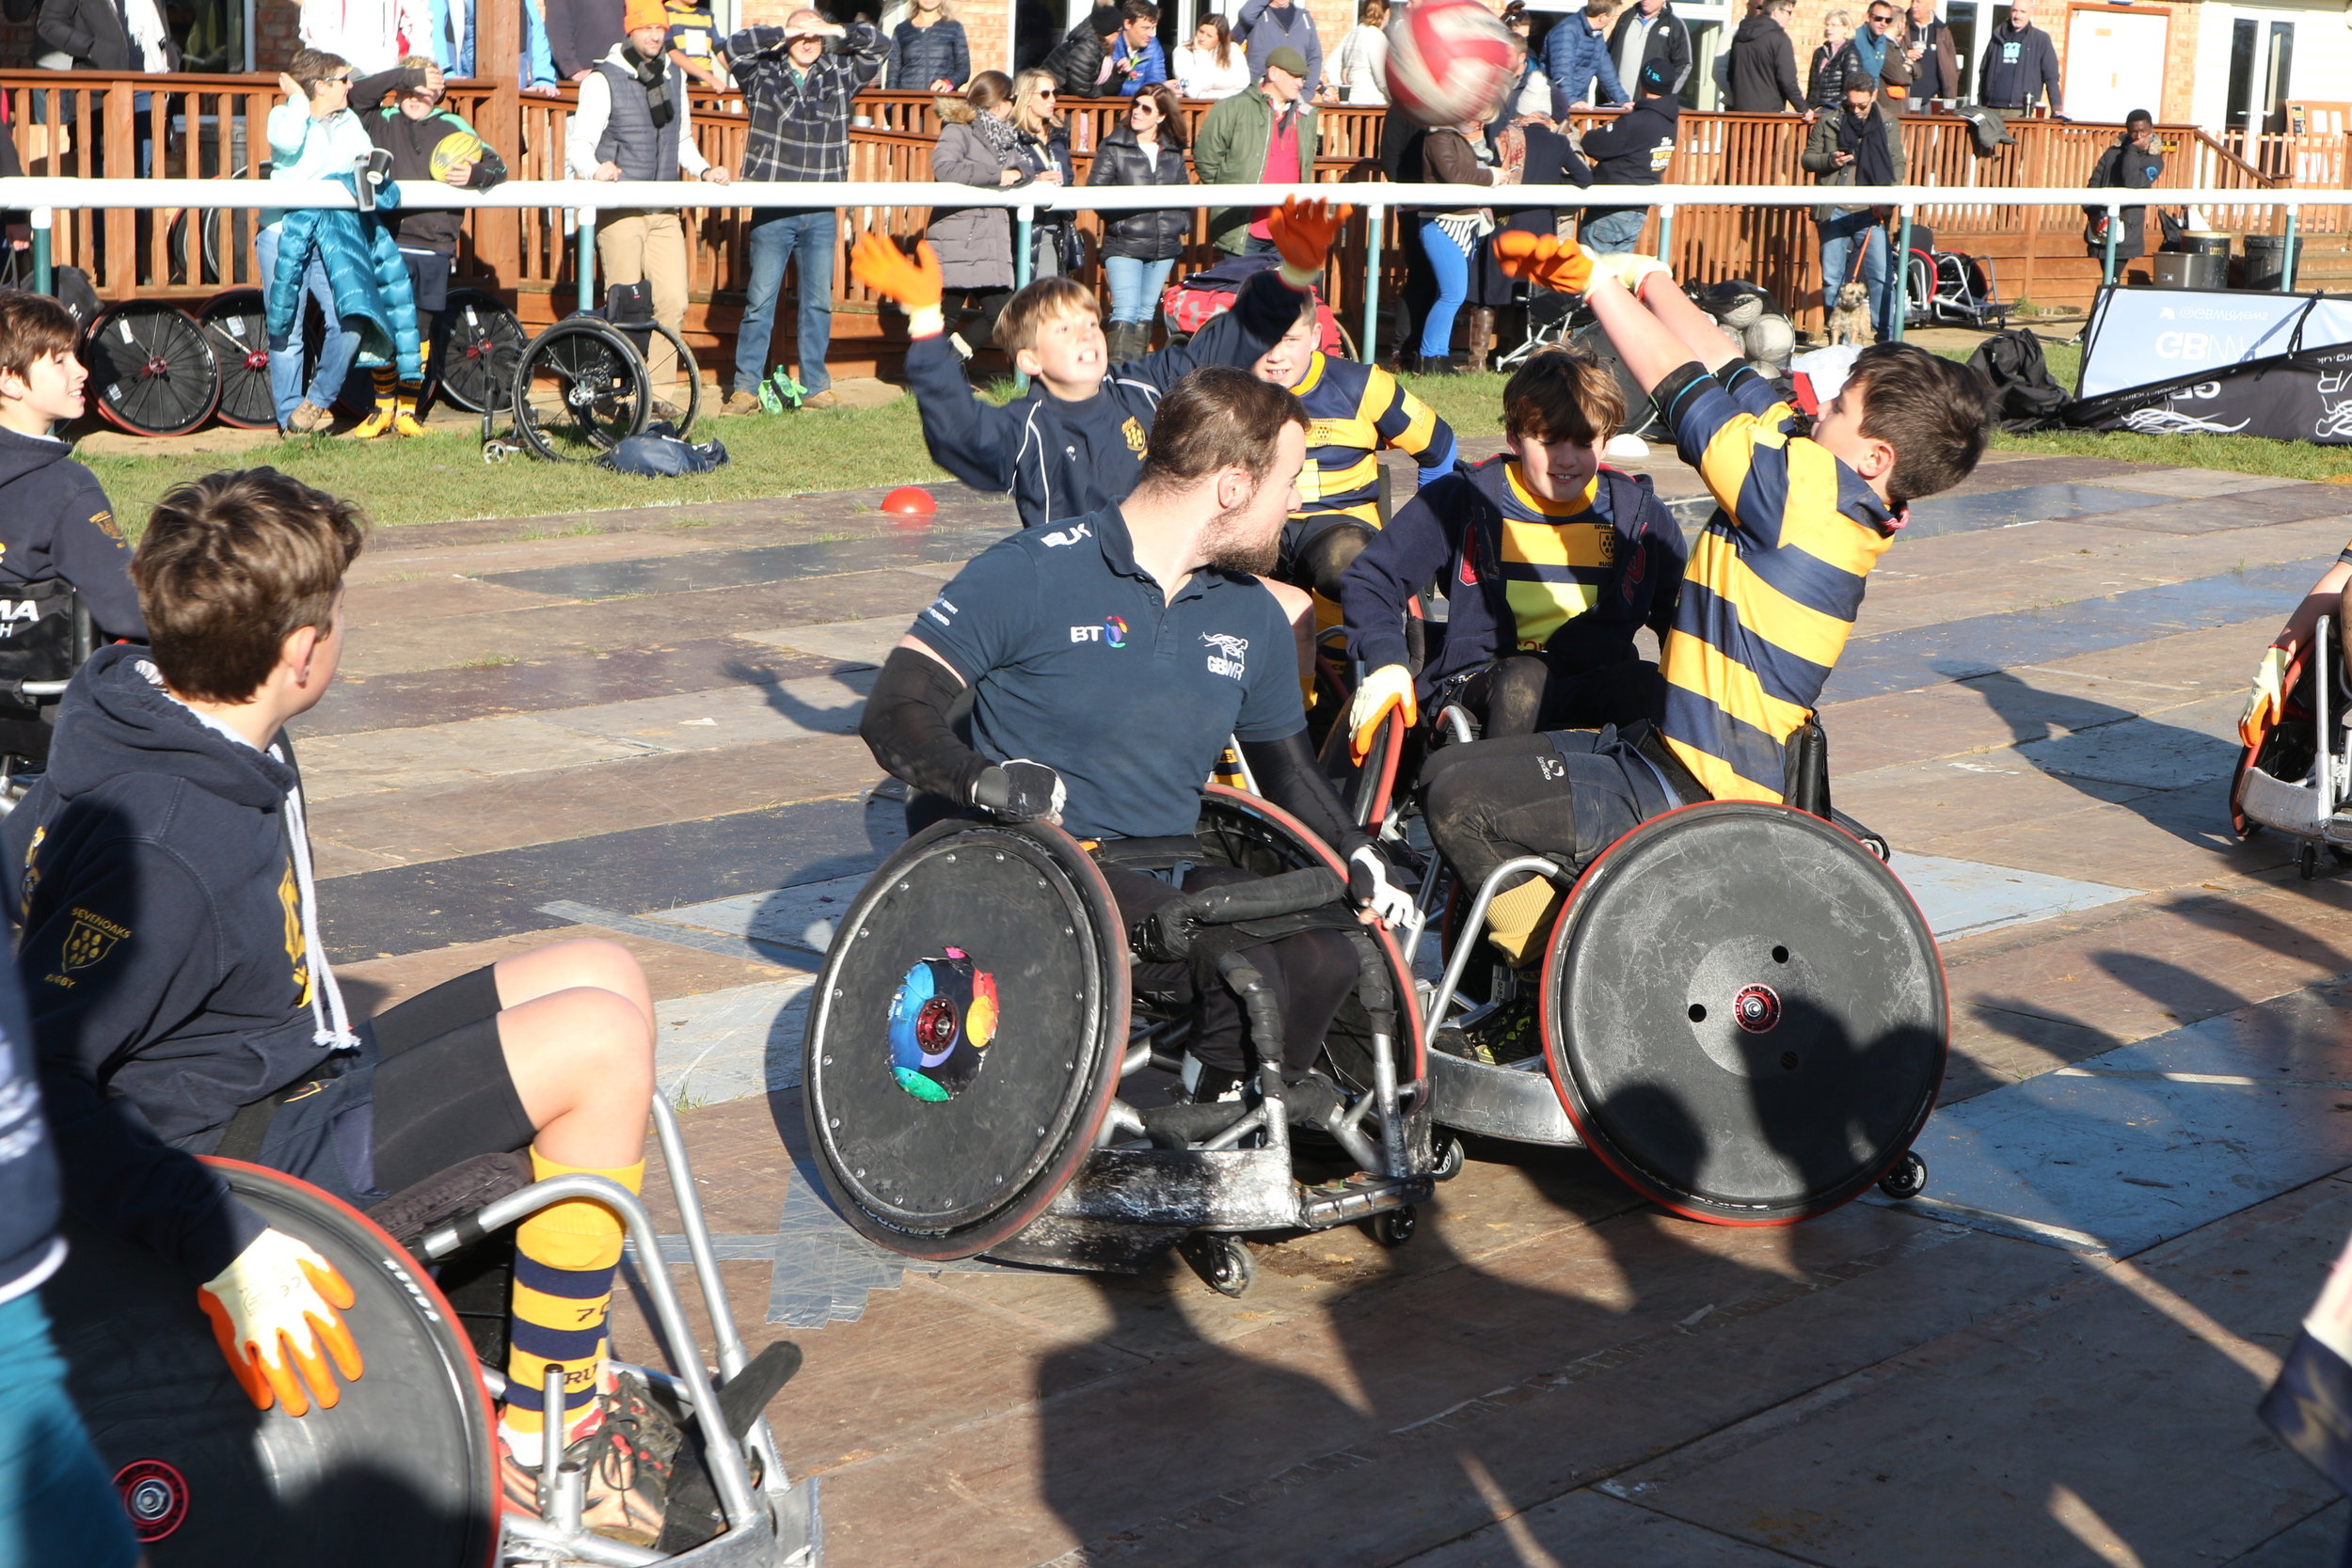 GB WHEELCHAIR RUGBY WEEKEND AT THE OAKS, 4 AND 5 NOV 2017 Photo credit: GBWR